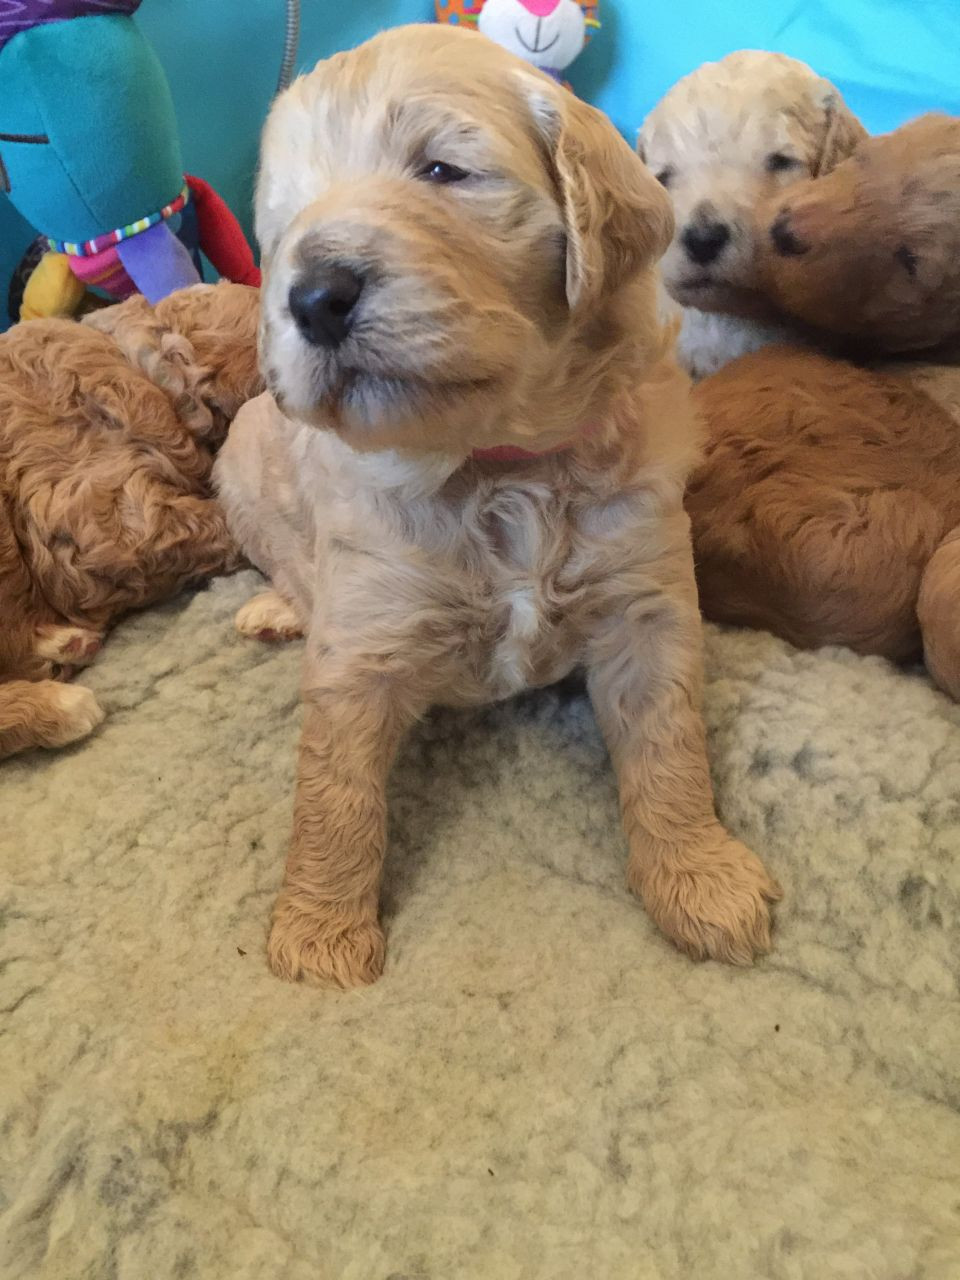 Poodle Puppies For Sale East Riverside Oltorf Tx 195870